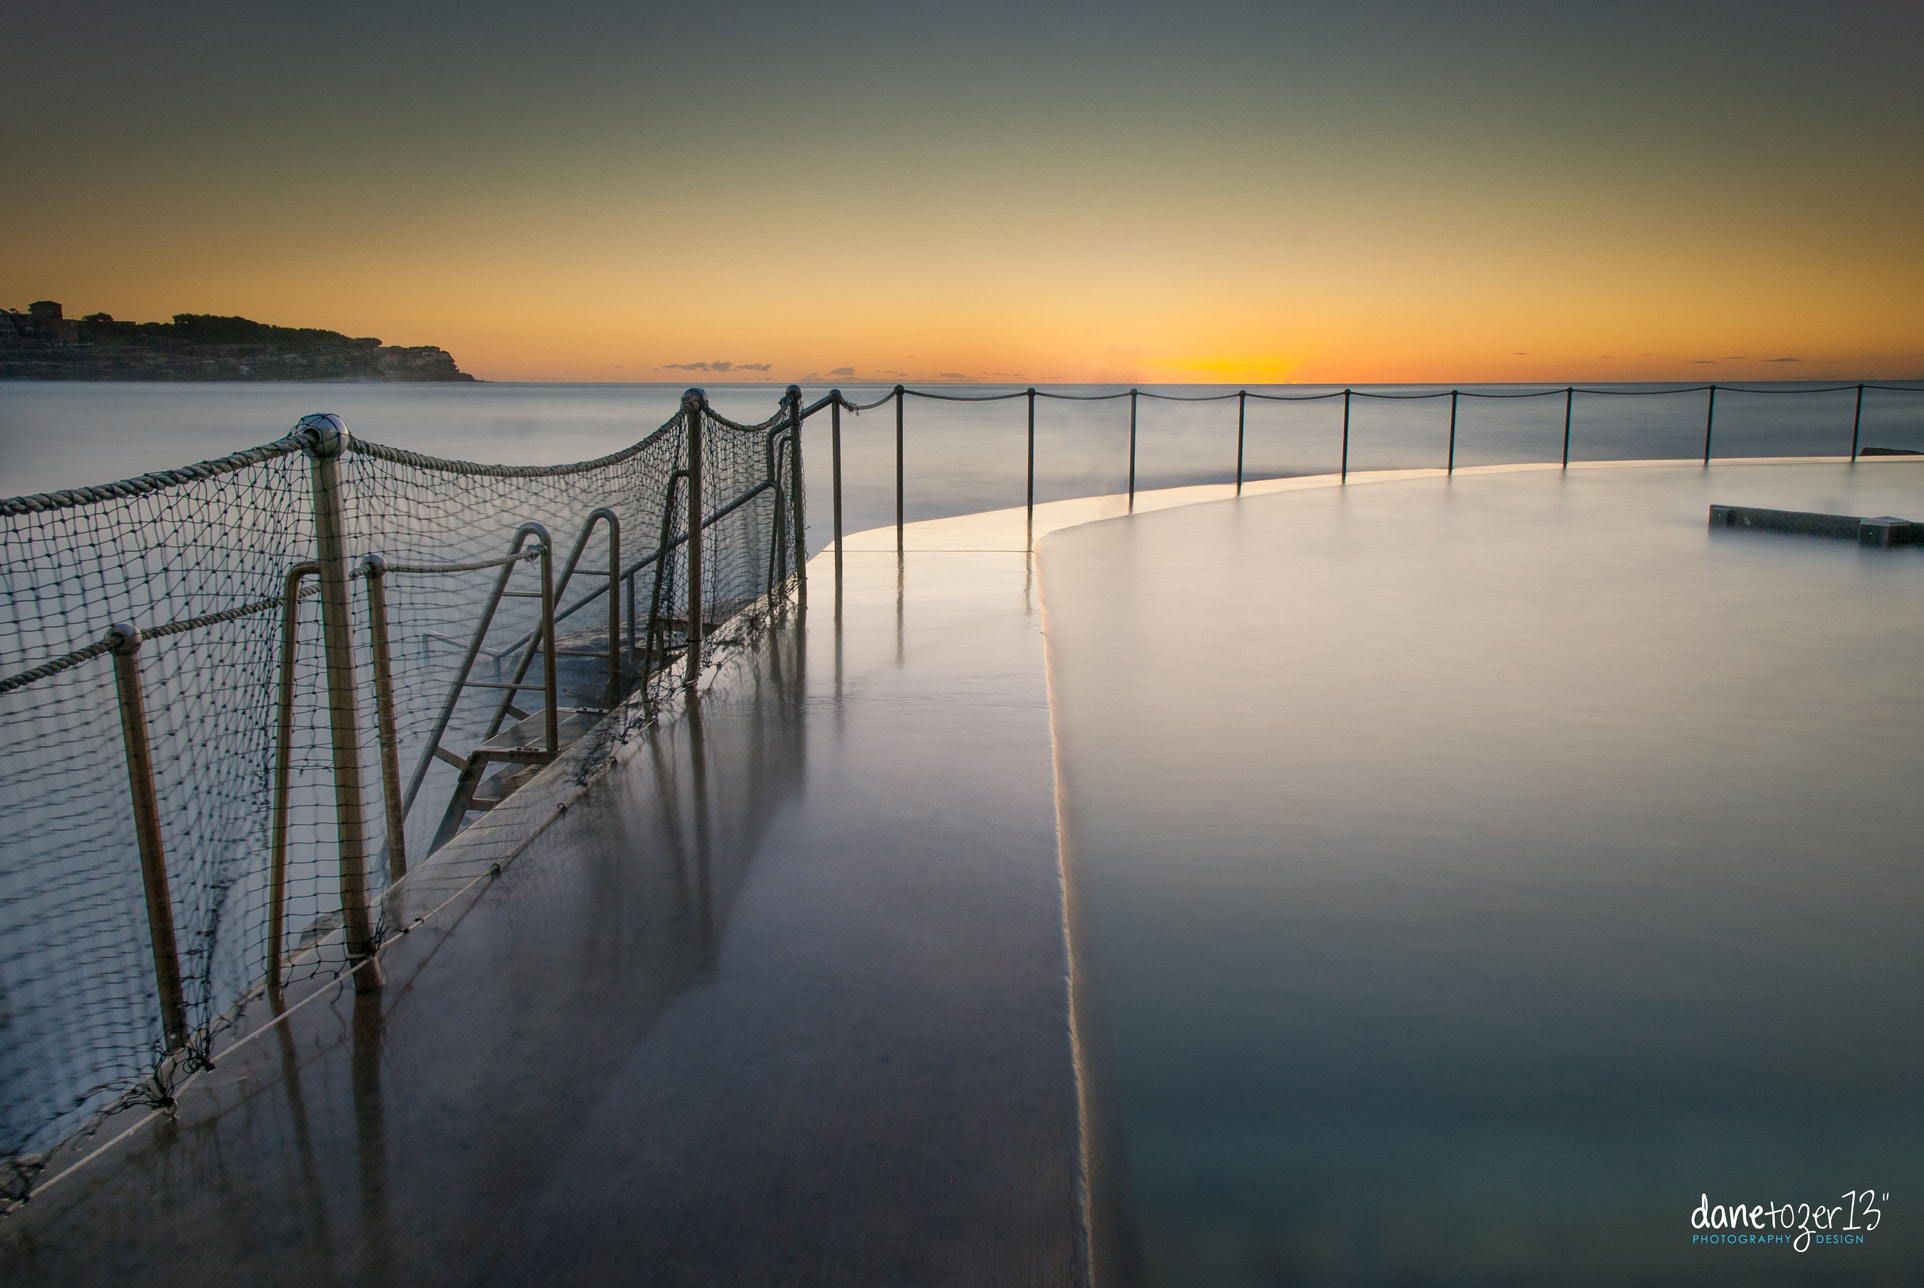 Photograph Bronte pool by Dane Tozer on 500px